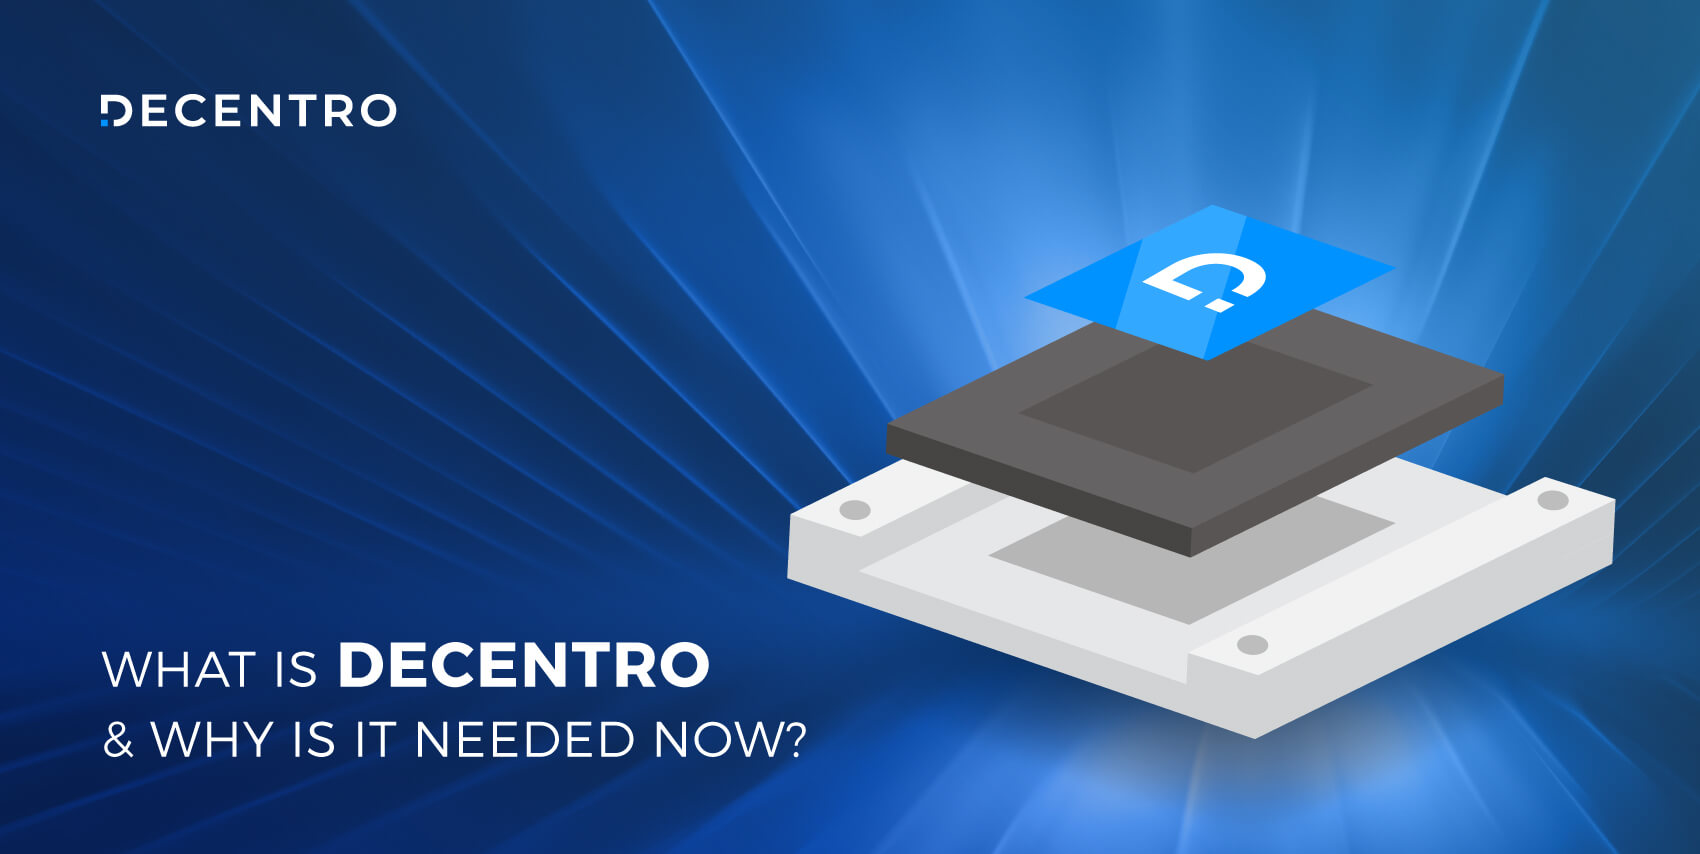 What is Decentro and why is it needed now.